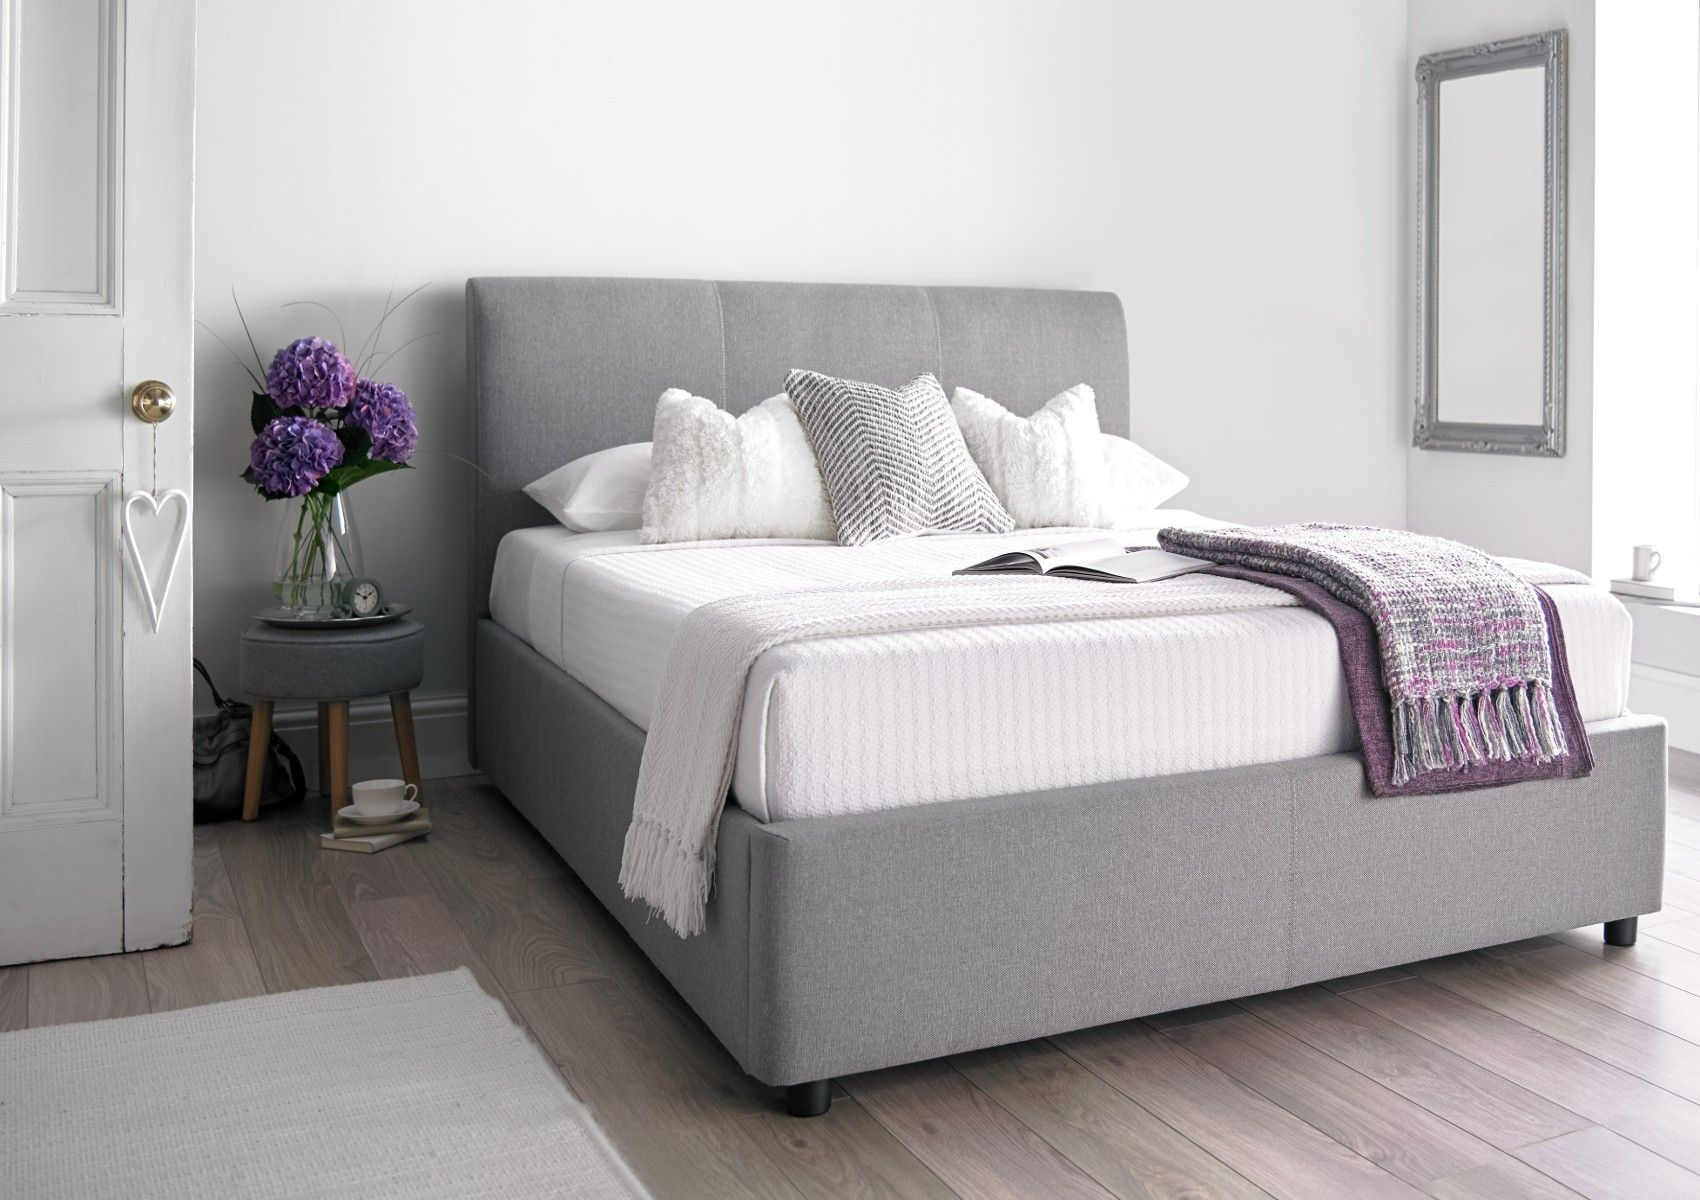 The Serenity Upholstered Ottoman Storage Bed is a brand new